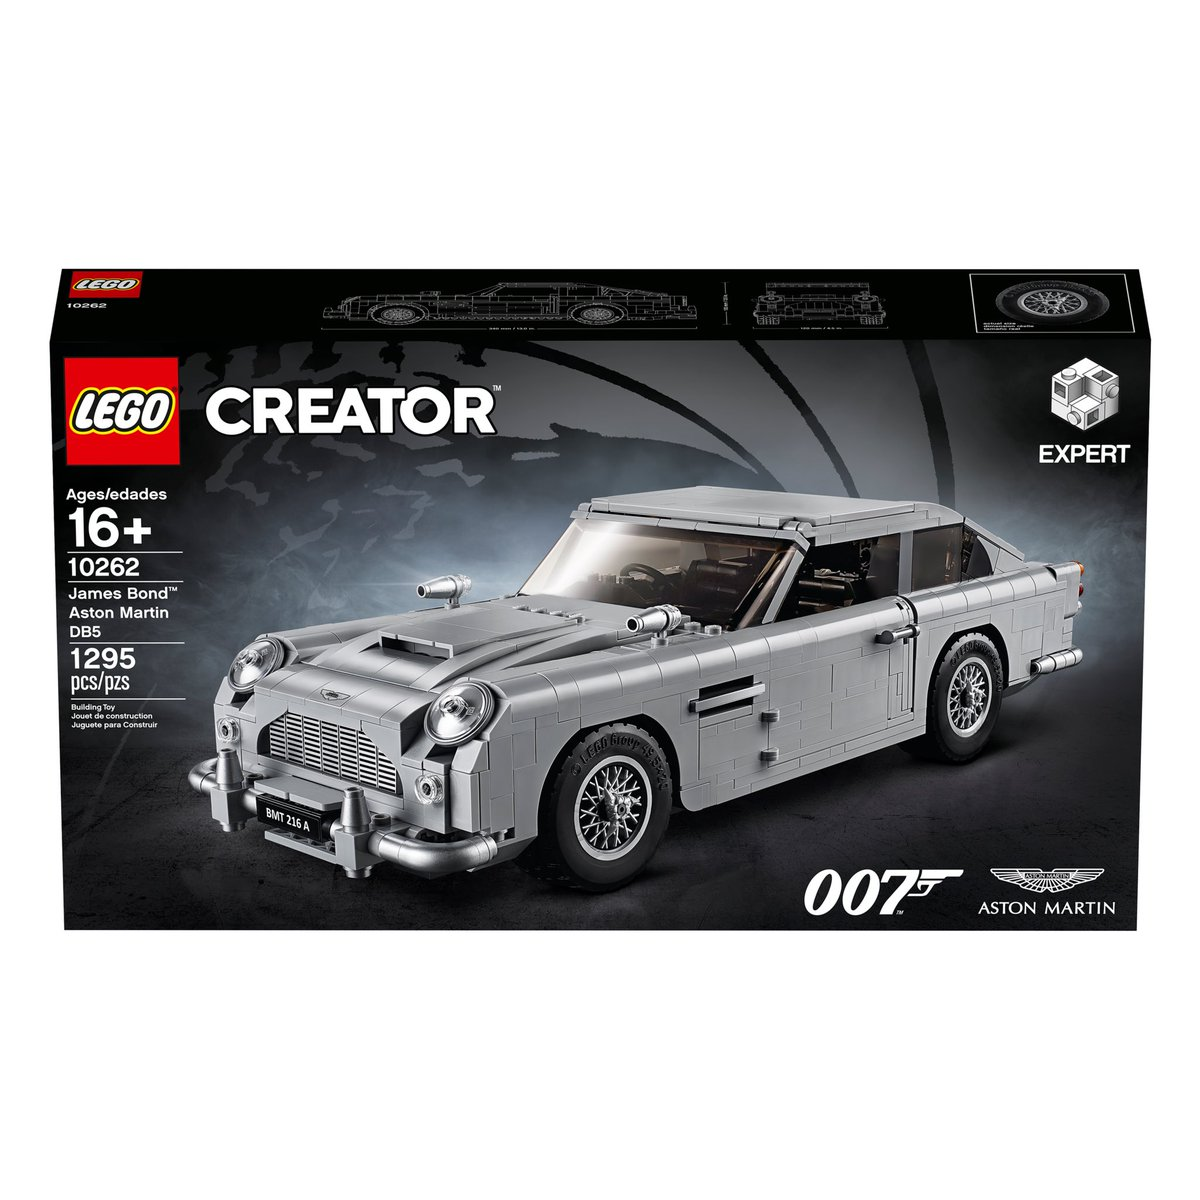 London Film Museum On Twitter Throughout September Why Not Come And Have A Go At Building The New Lego Creator Expert James Bond Aston Martin Db5 Here At Bond In Motion Win